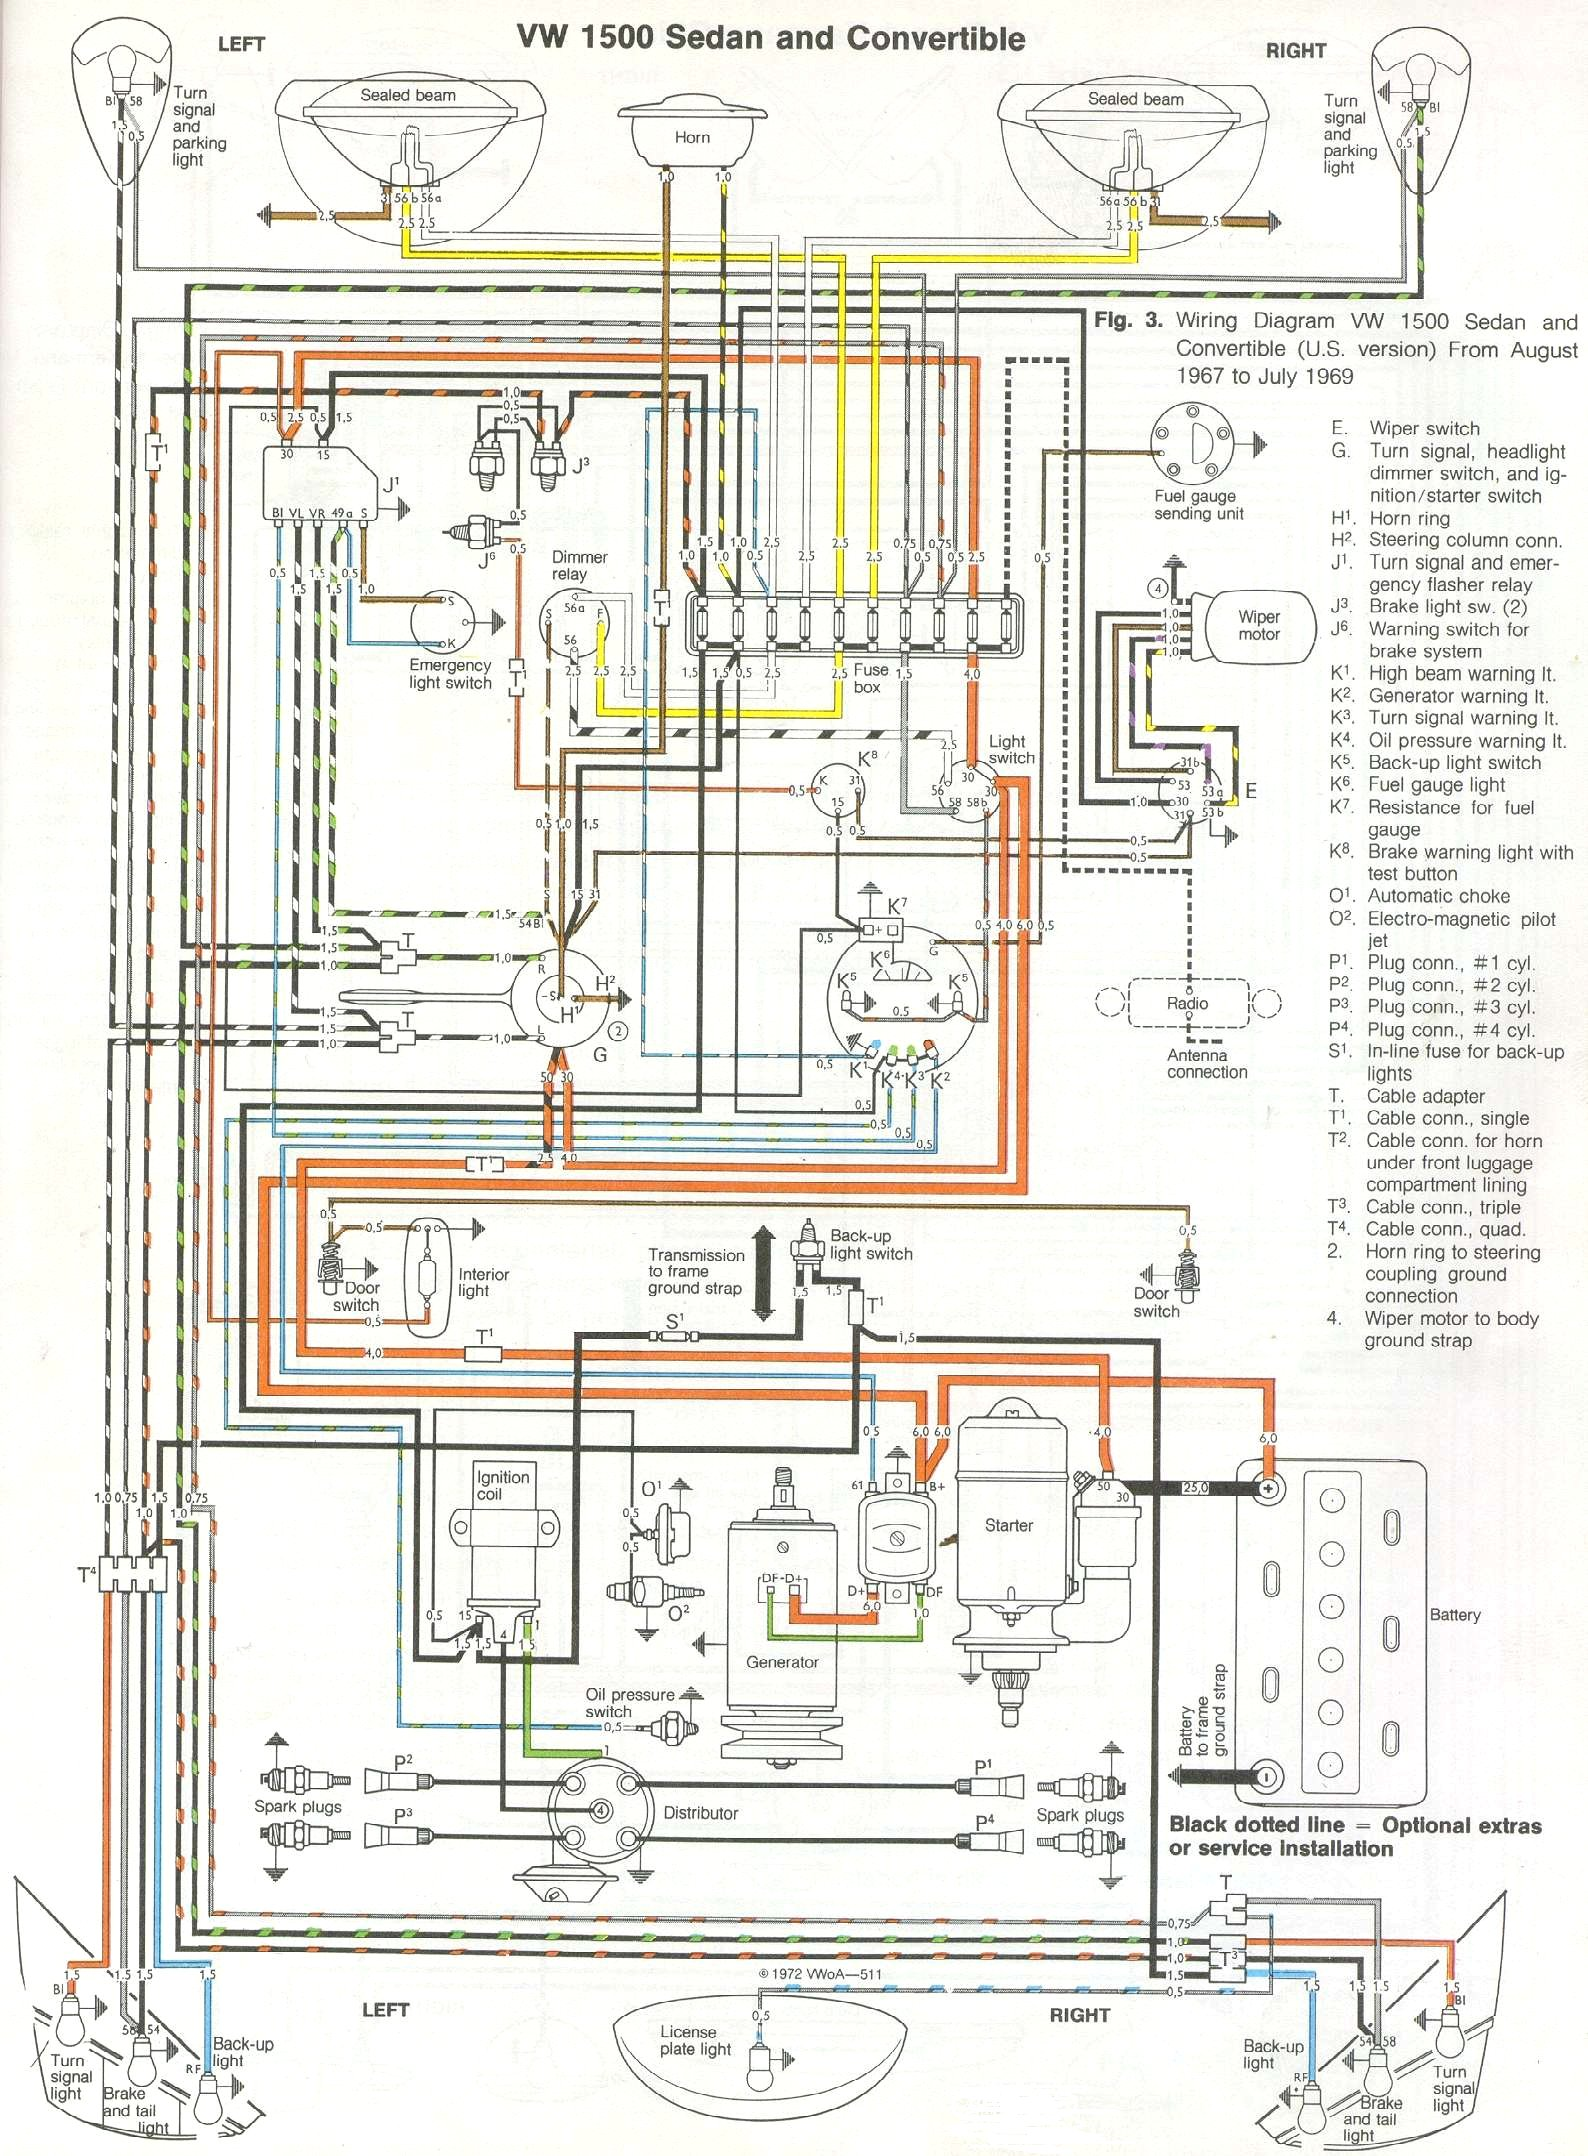 bug_6869 1969 71 beetle wiring diagram thegoldenbug com 1977 VW Beetle Wiring Diagram at honlapkeszites.co